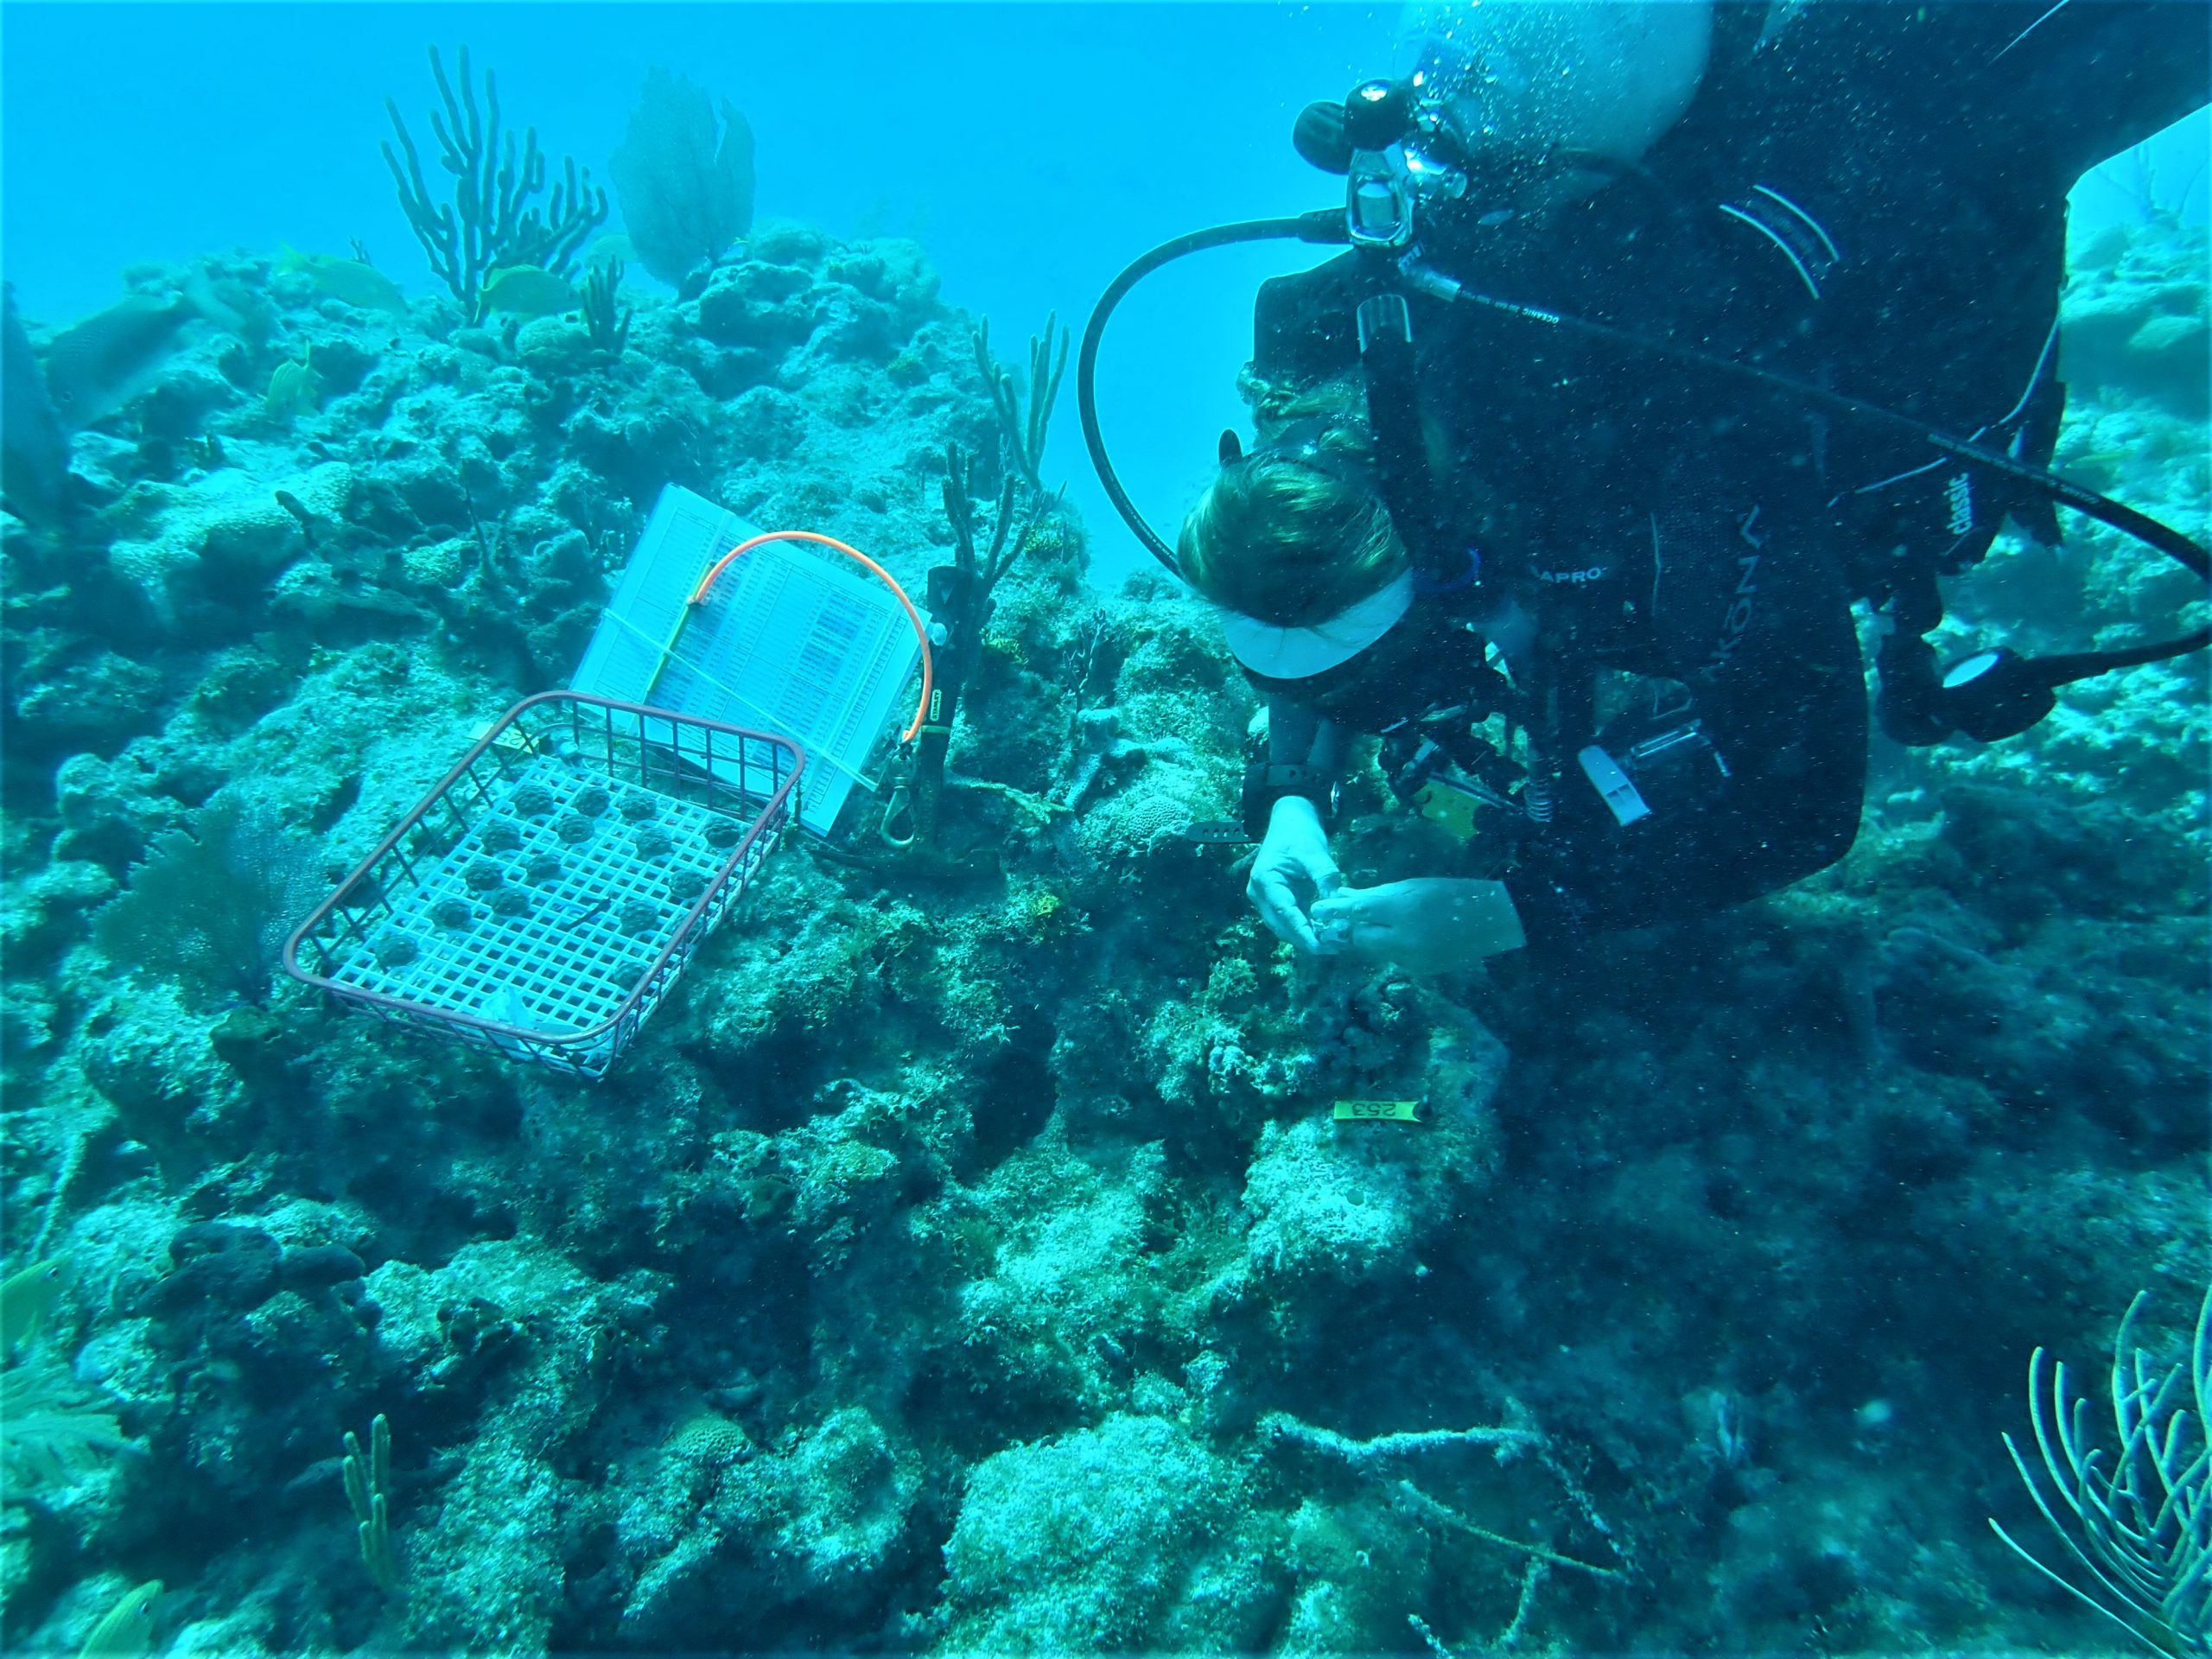 Kylie outplanting coral